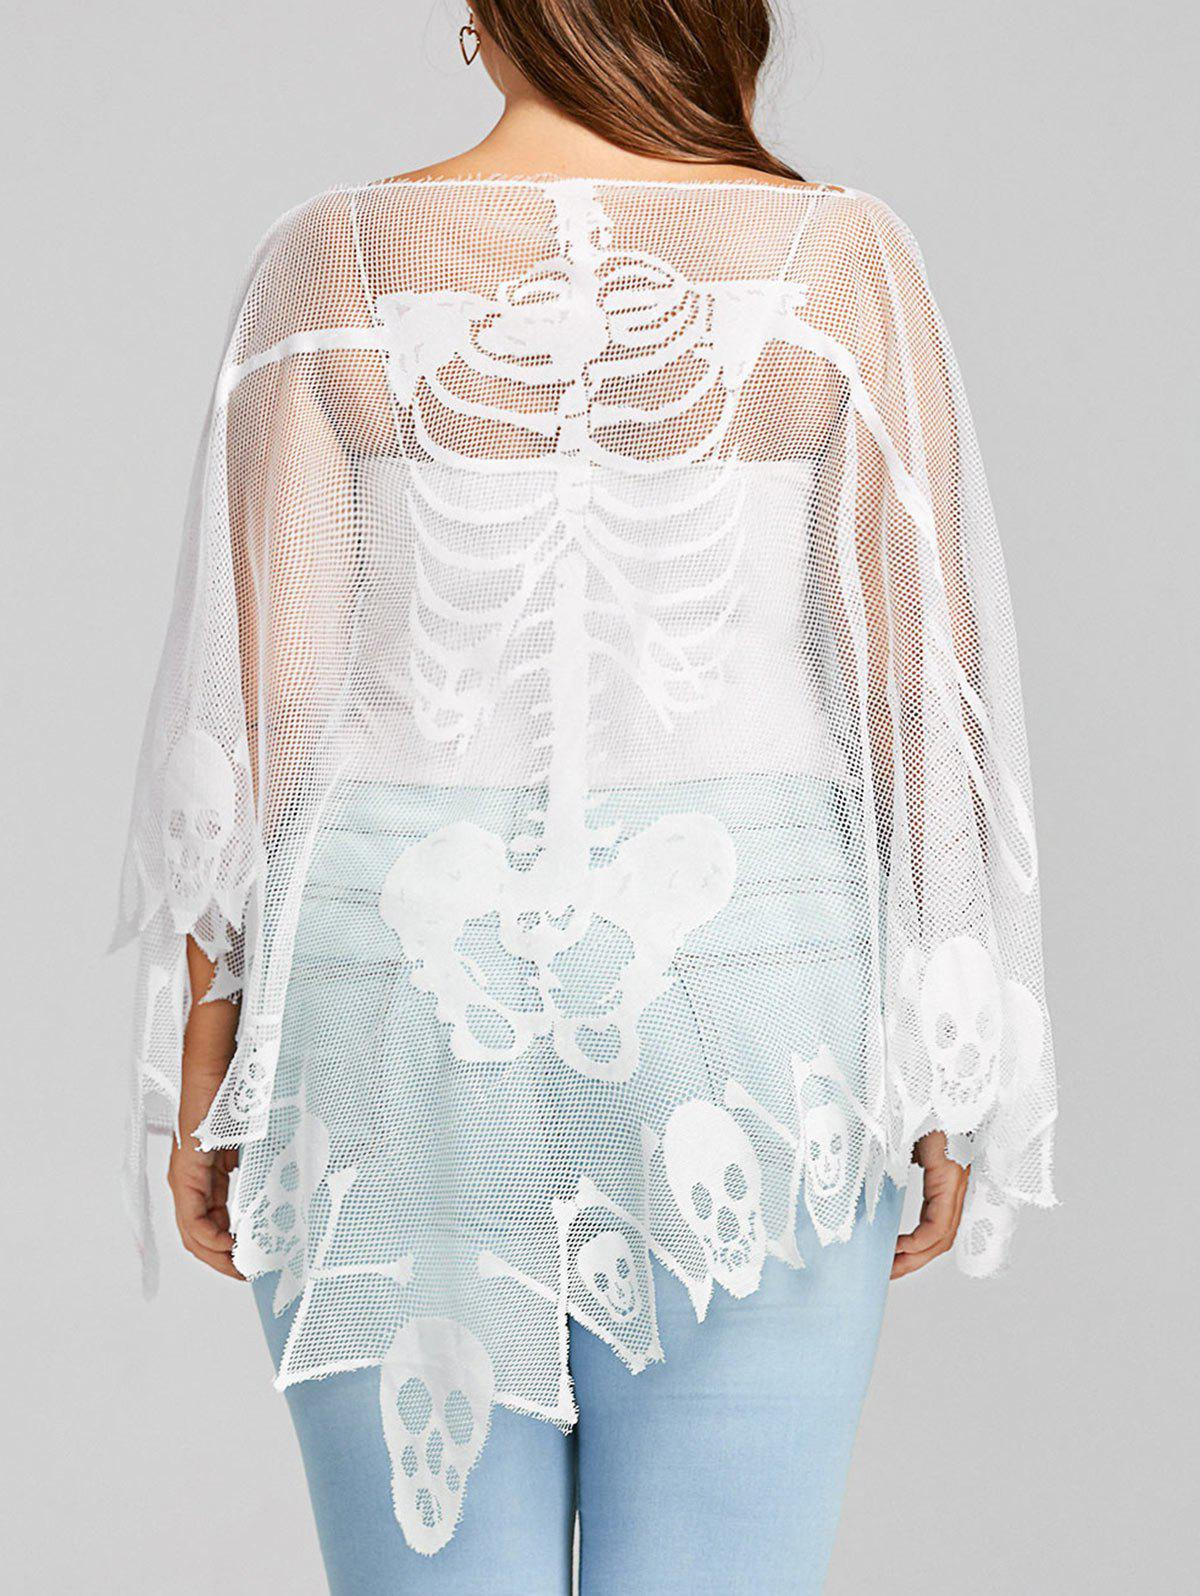 Plus Size Batwing Sleeve Sheer Skull Mesh T-shirtWOMEN<br><br>Size: ONE SIZE; Color: WHITE; Material: Polyester; Shirt Length: Long; Sleeve Length: Full; Collar: Boat Neck; Style: Fashion; Season: Fall,Spring; Sleeve Type: Batwing Sleeve; Pattern Type: Skulls; Weight: 0.1450kg; Package Contents: 1 x T-shirt;